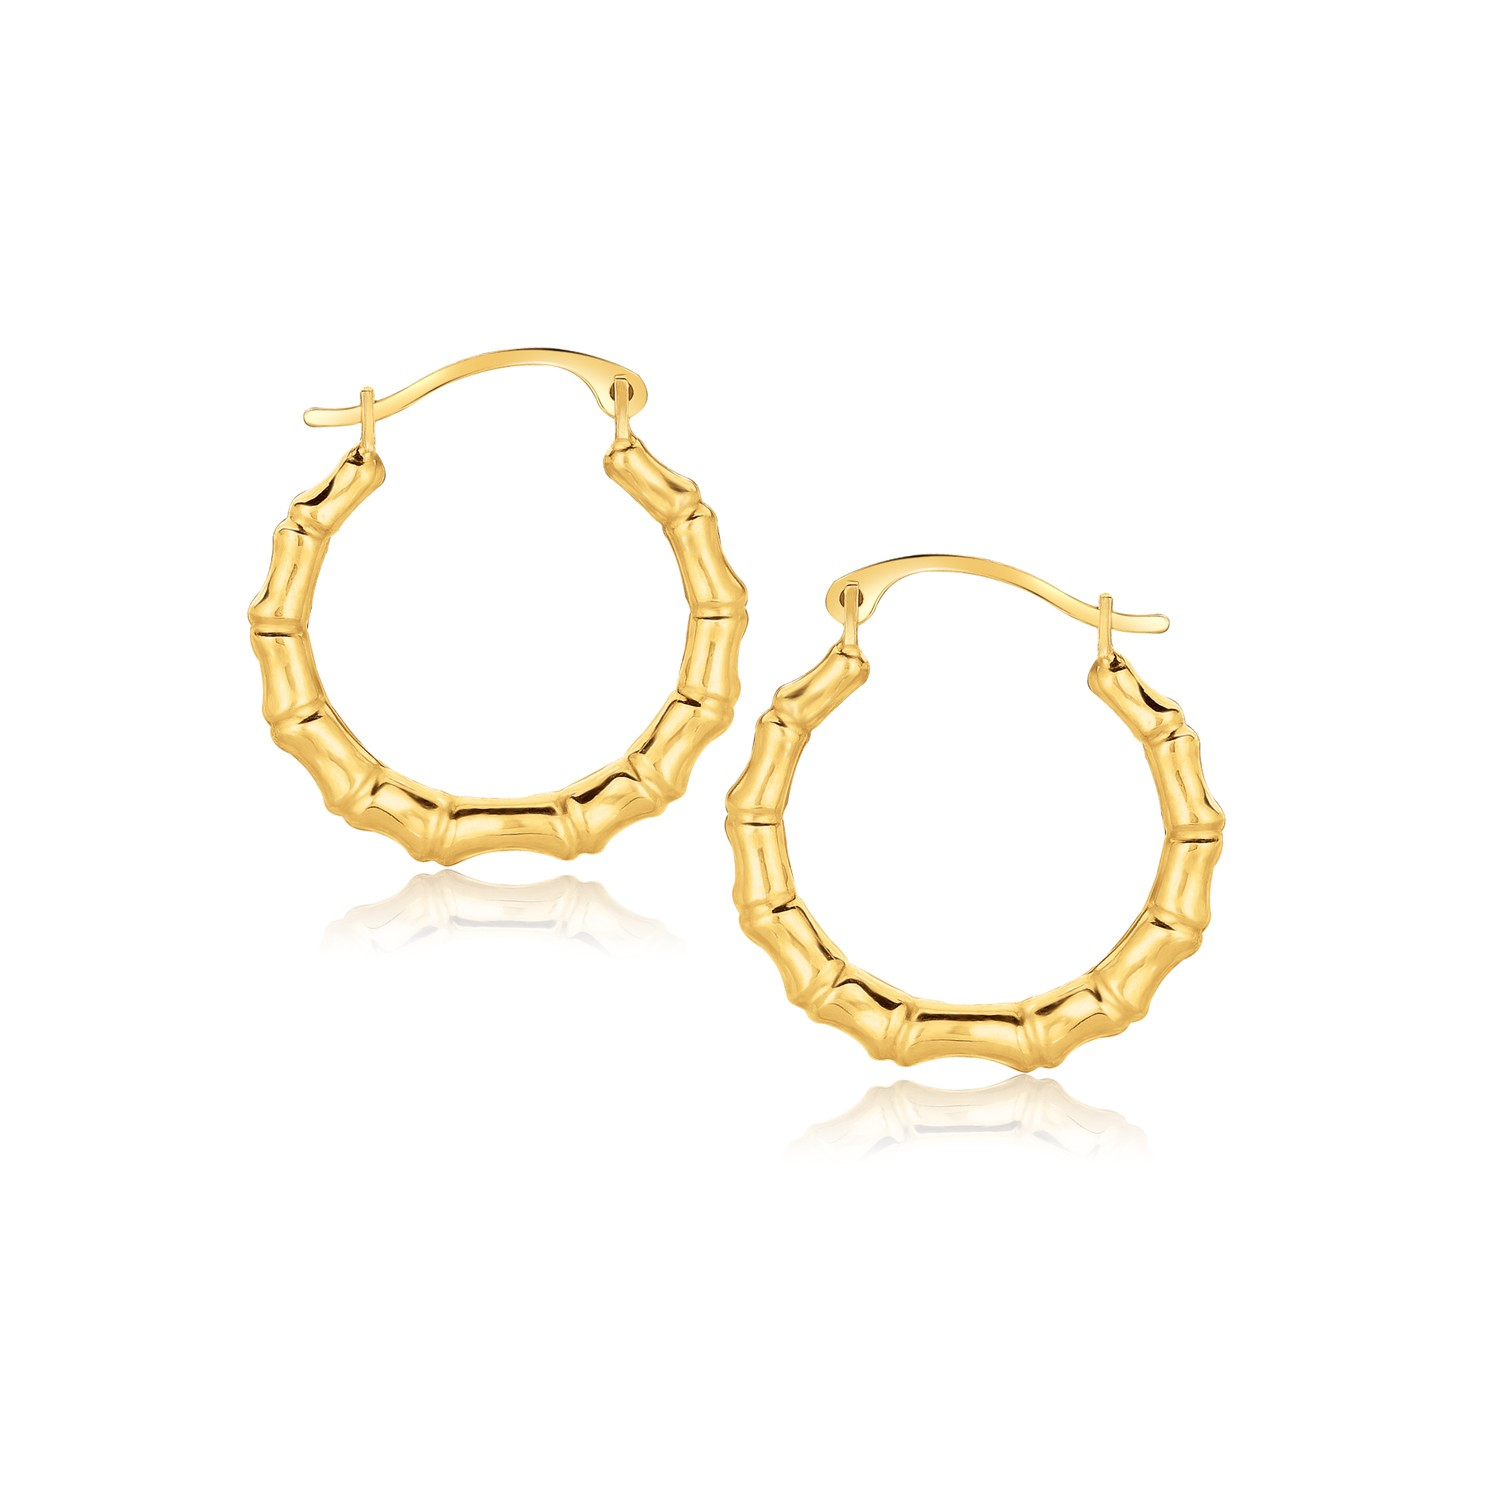 Bamboo Hoop Earrings In 10k Yellow Gold Richard Cannon Jewelry